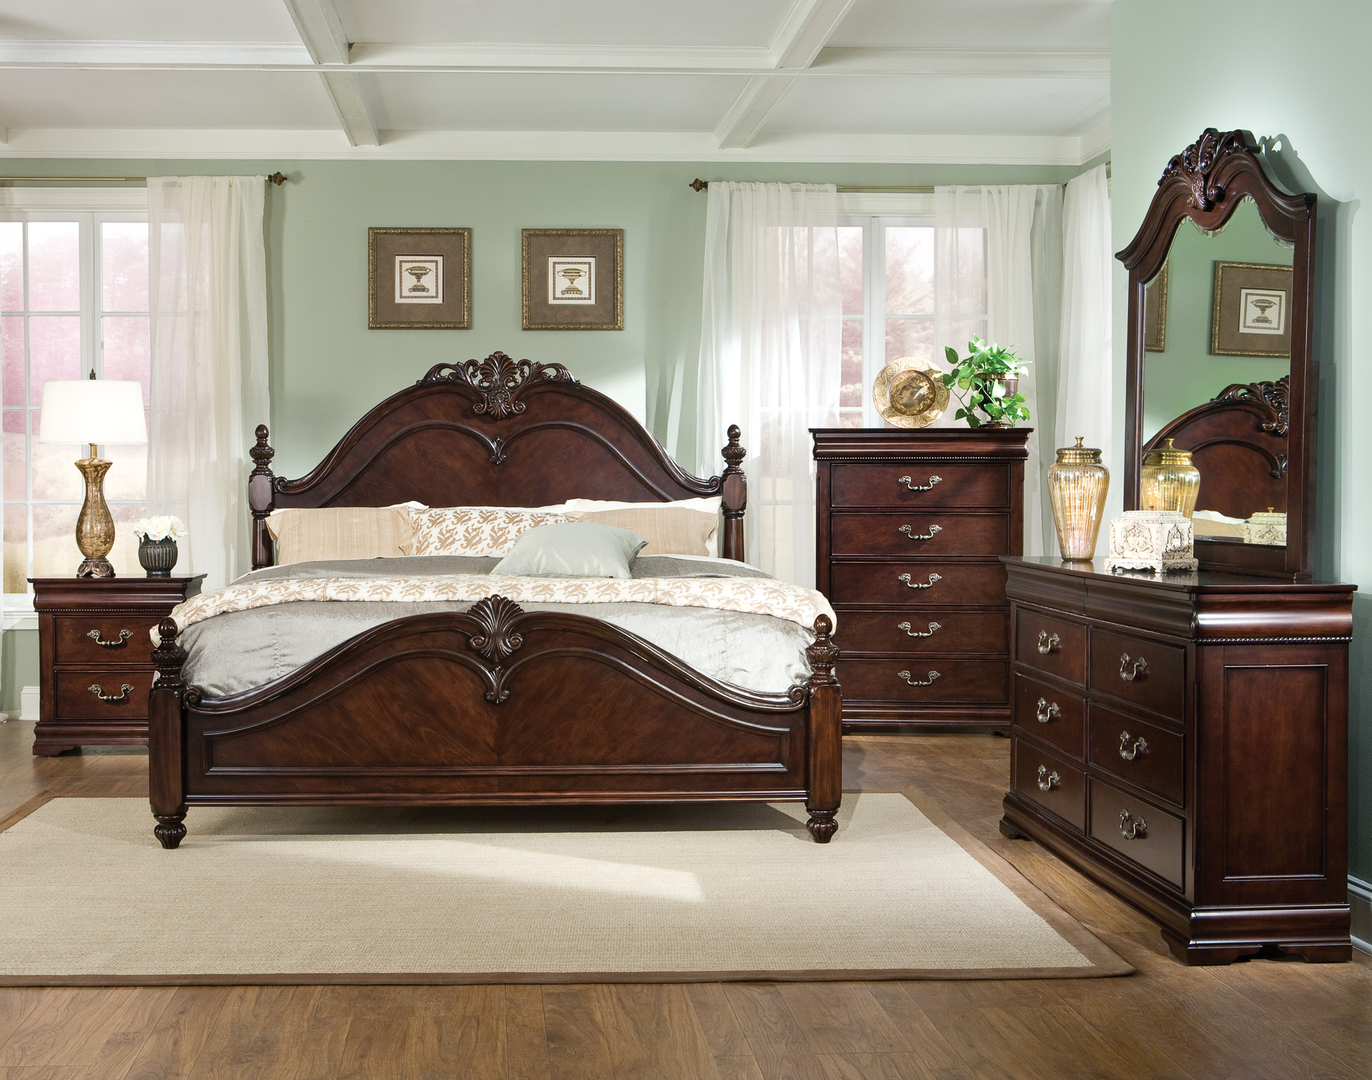 Sawyer Furniture   Beautiful  Affordable Home Furnishings in Mobile  AL. Sawyer Furniture   Beautiful  Affordable Home Furnishings in